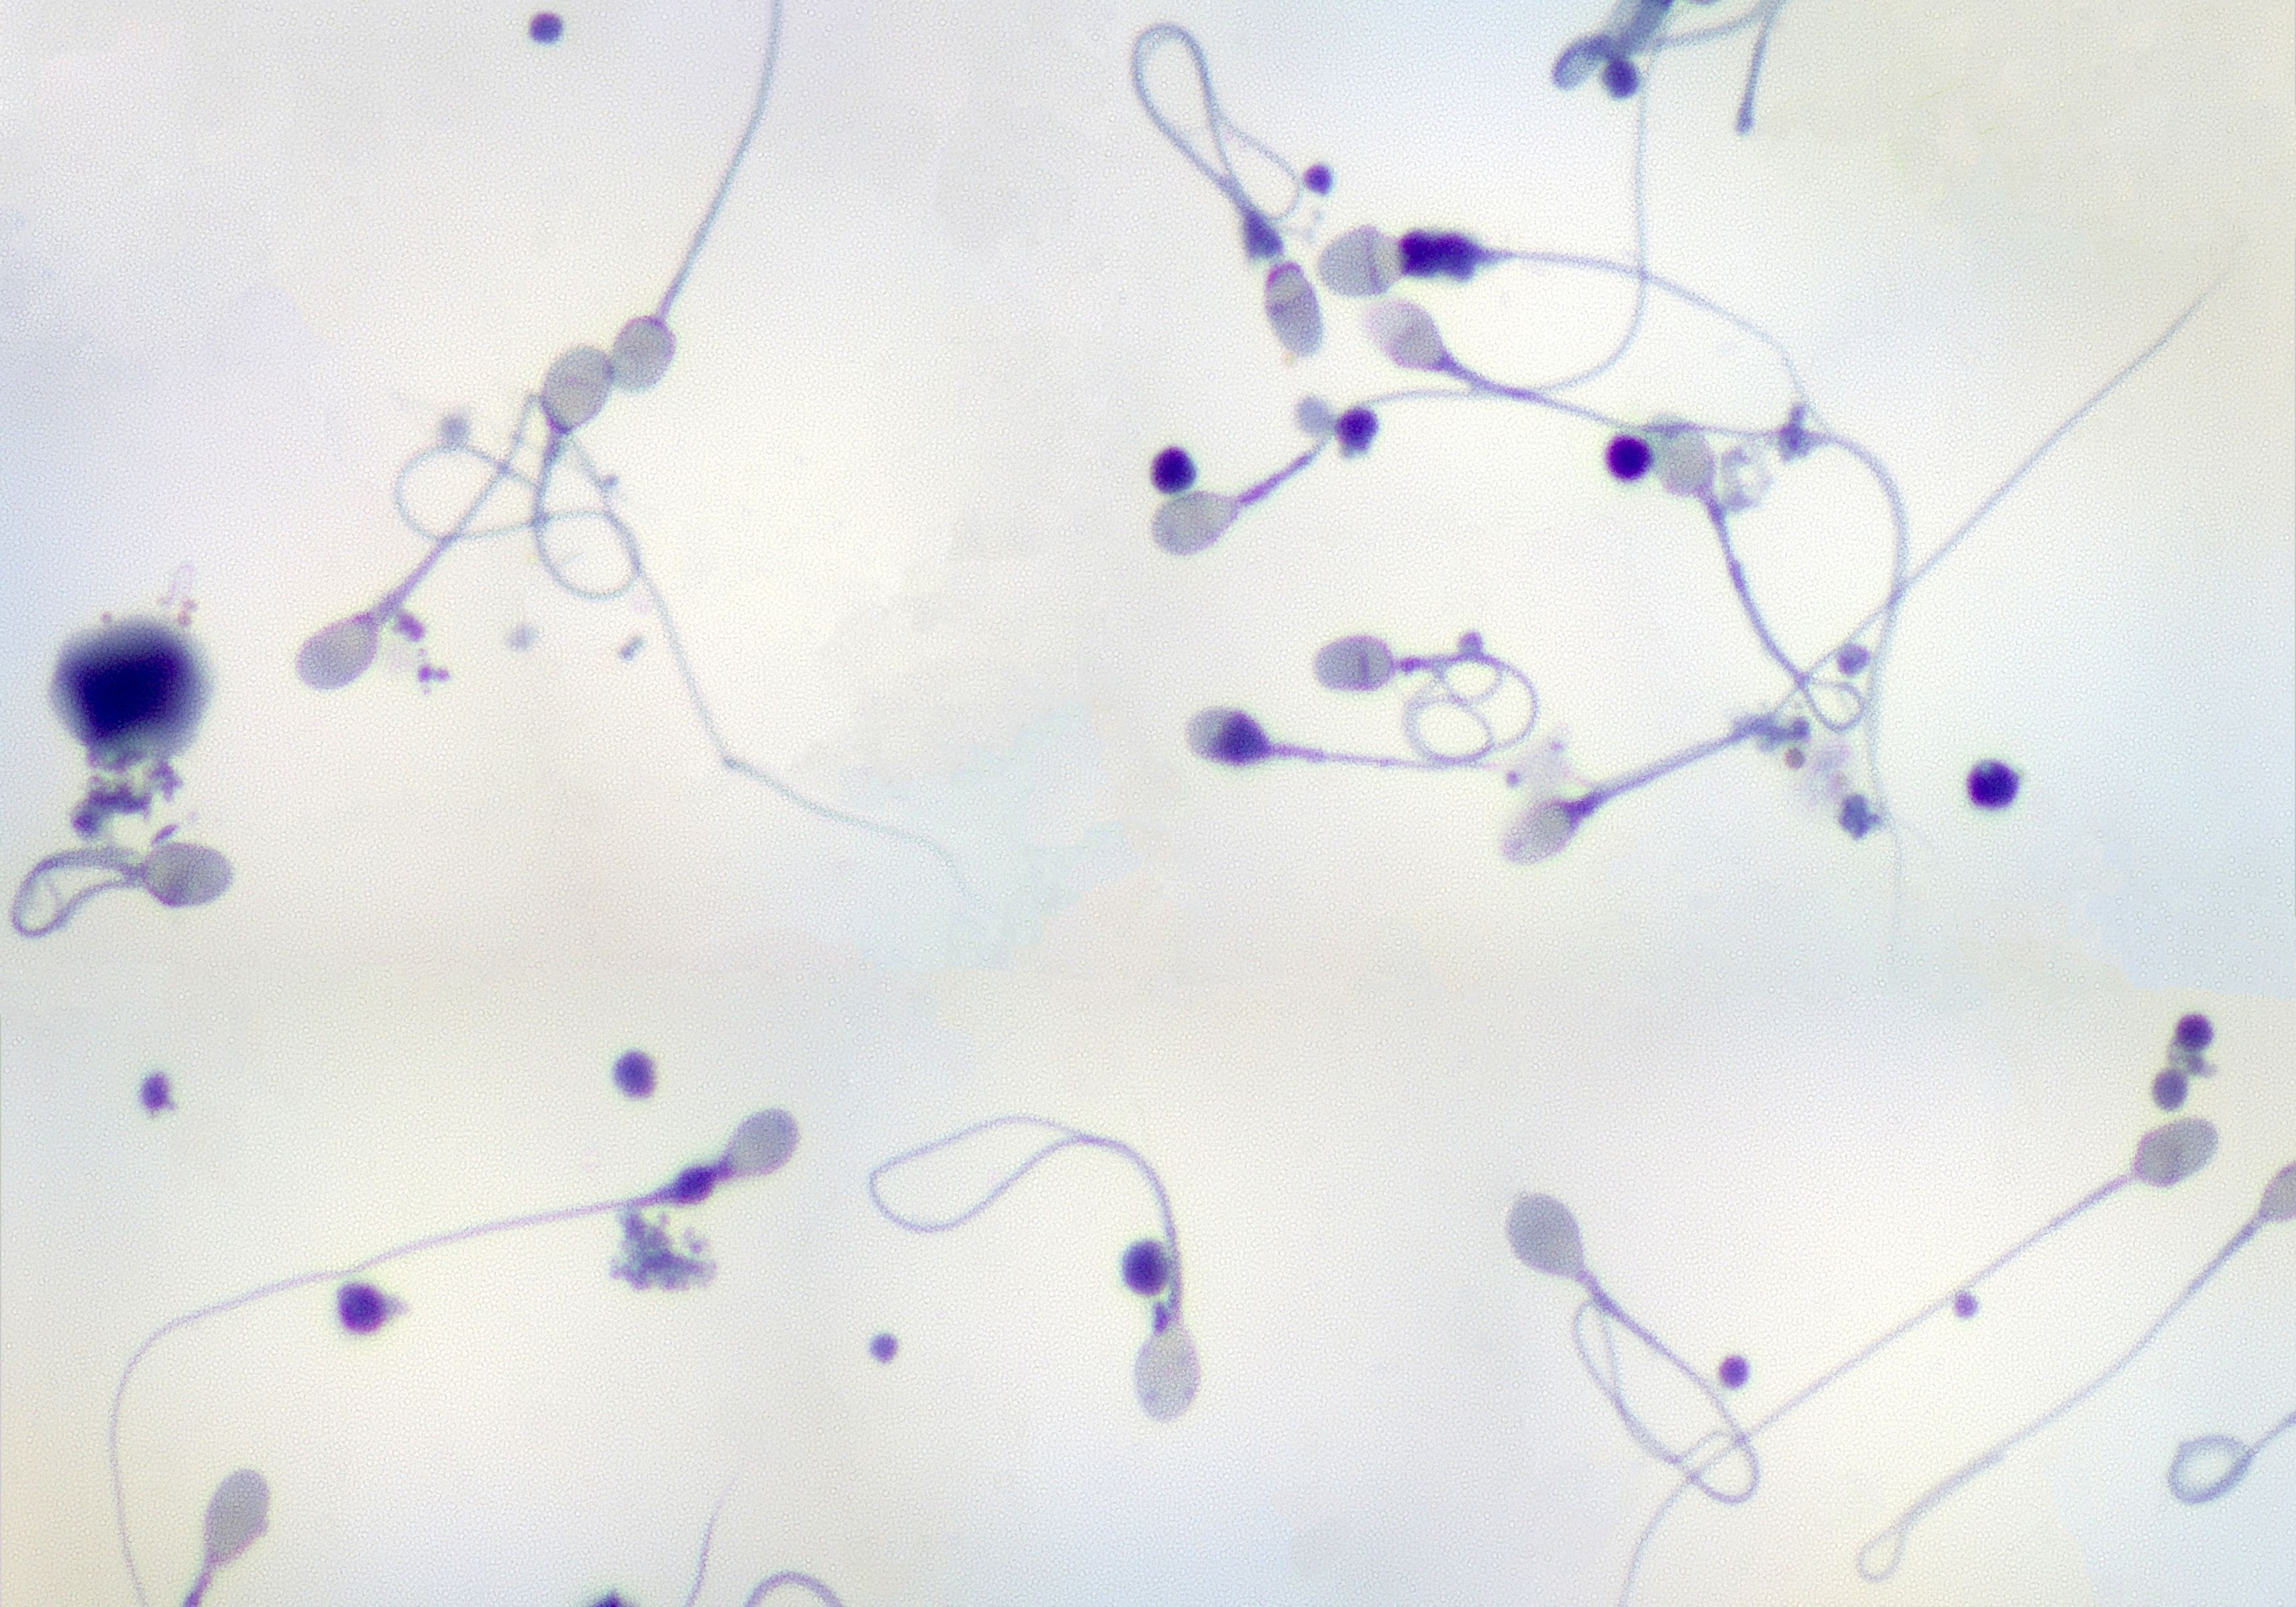 A microscopic view of sperm